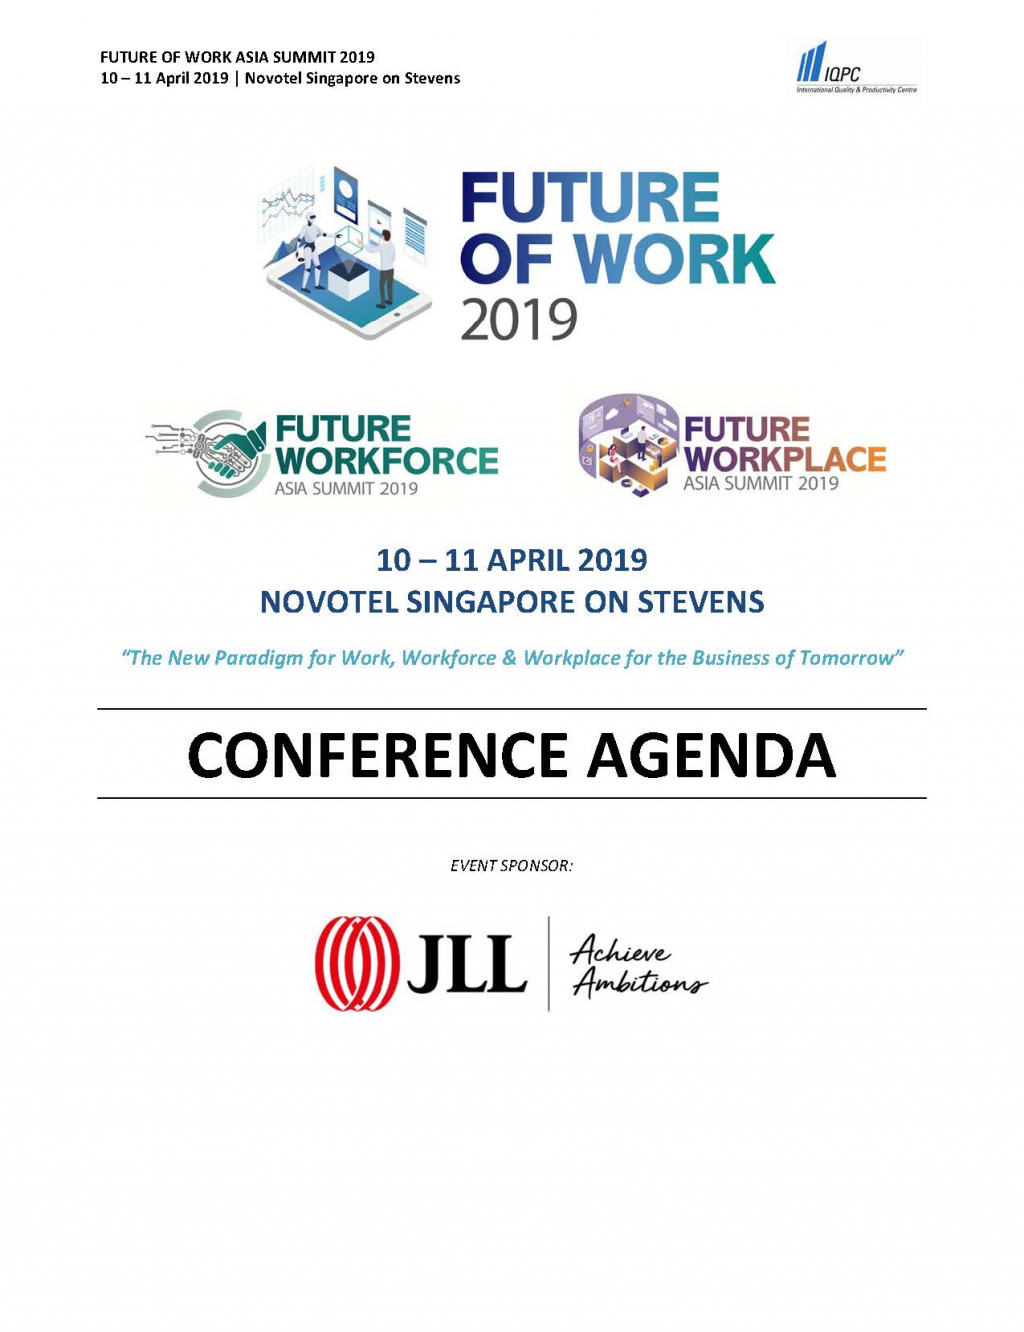 Download the Future of Work 2019 Brochure - Future Workforce and Future Workplace